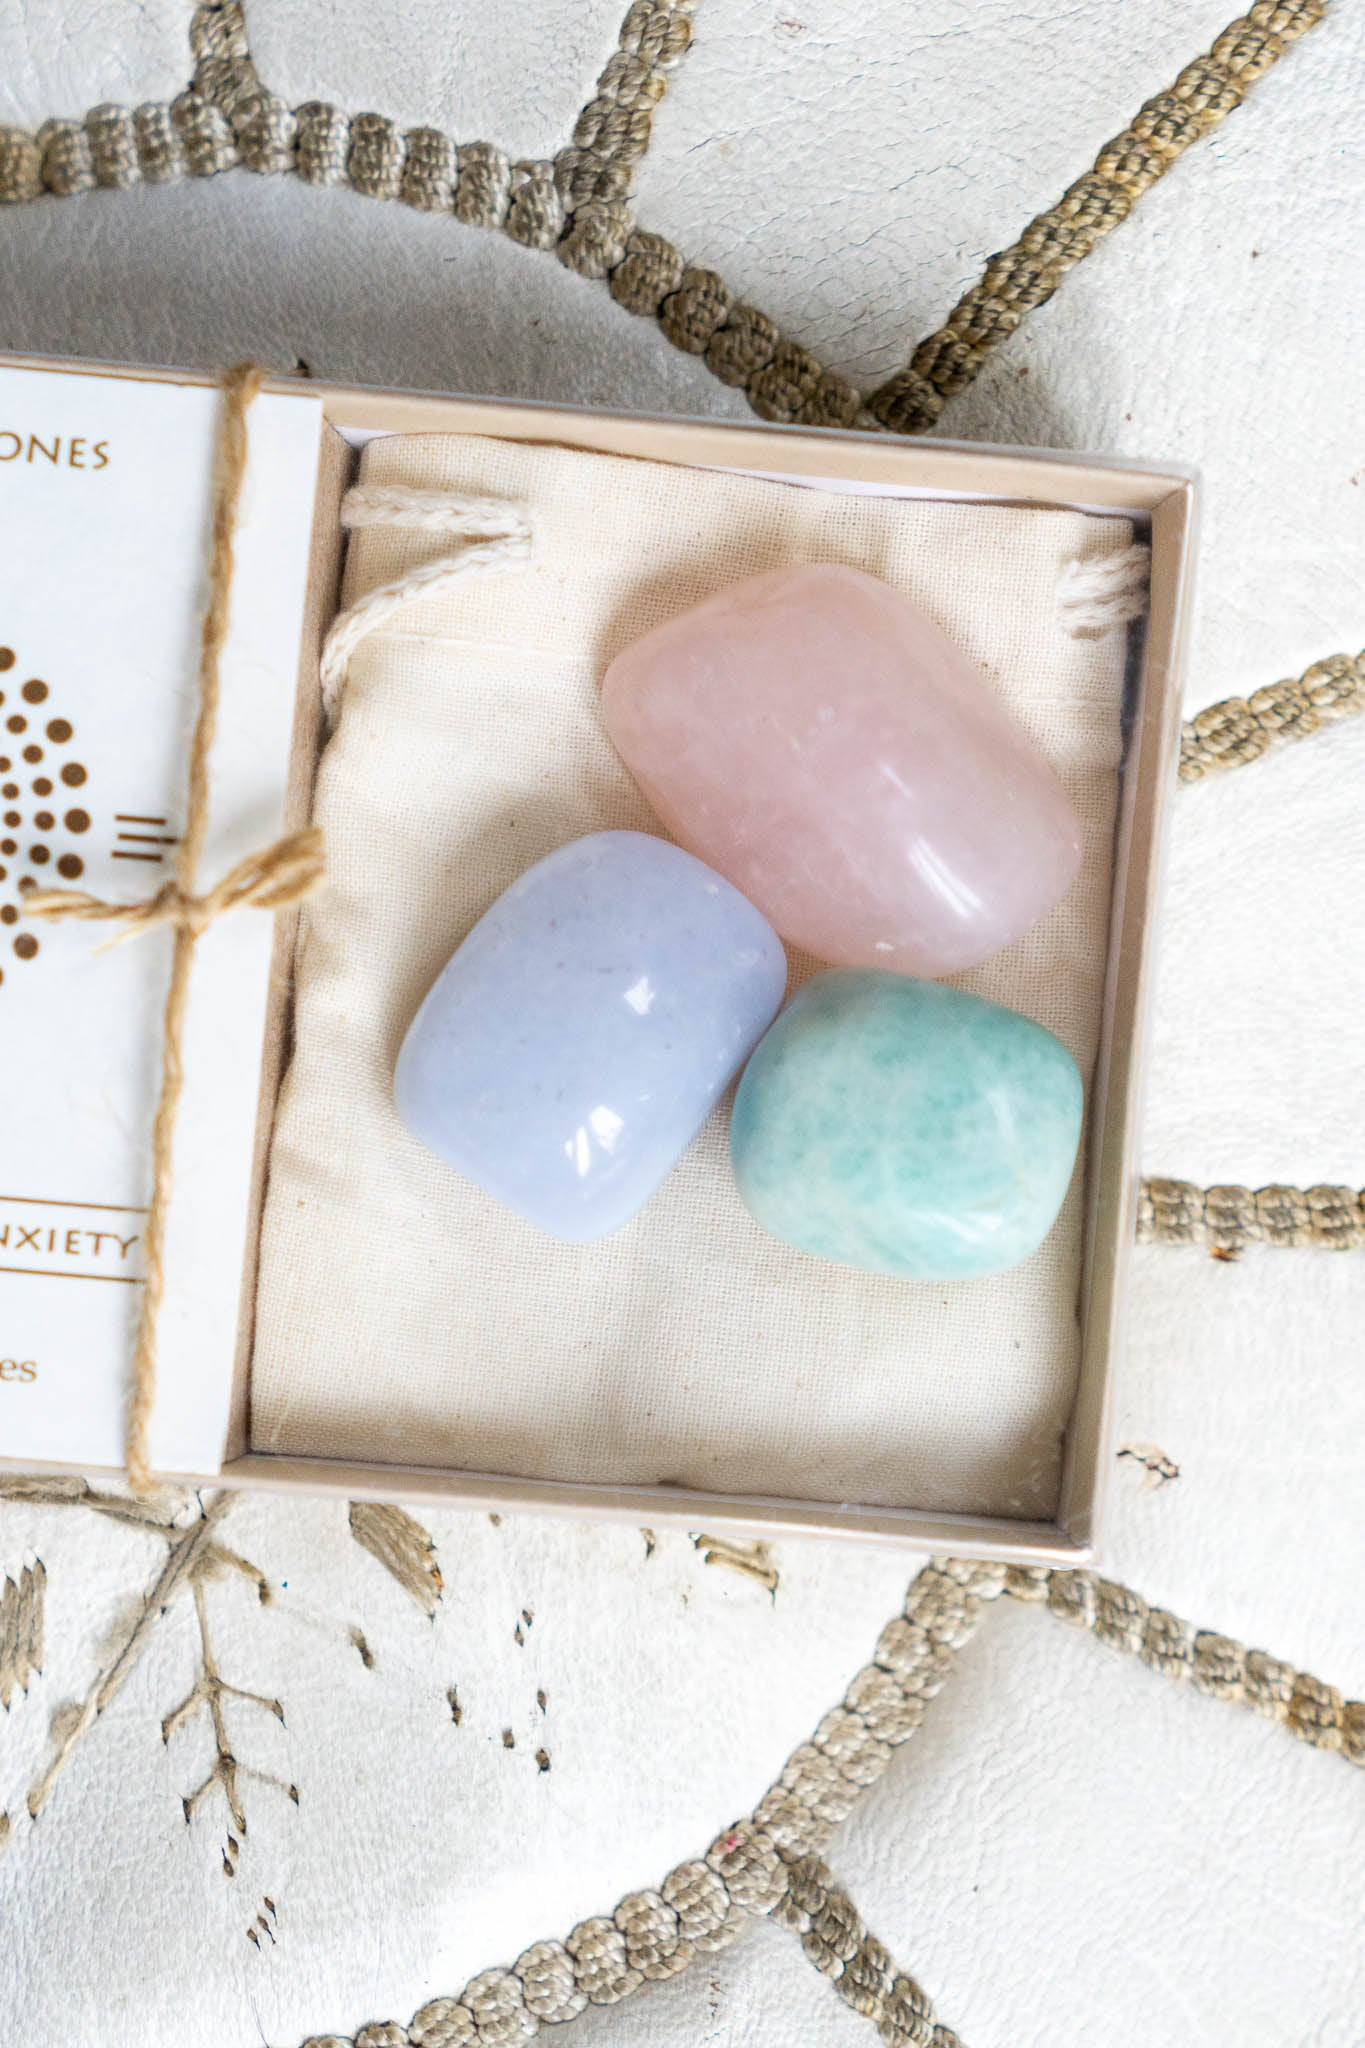 Calming and Anti-Anxiety Stone Set - The Canyon